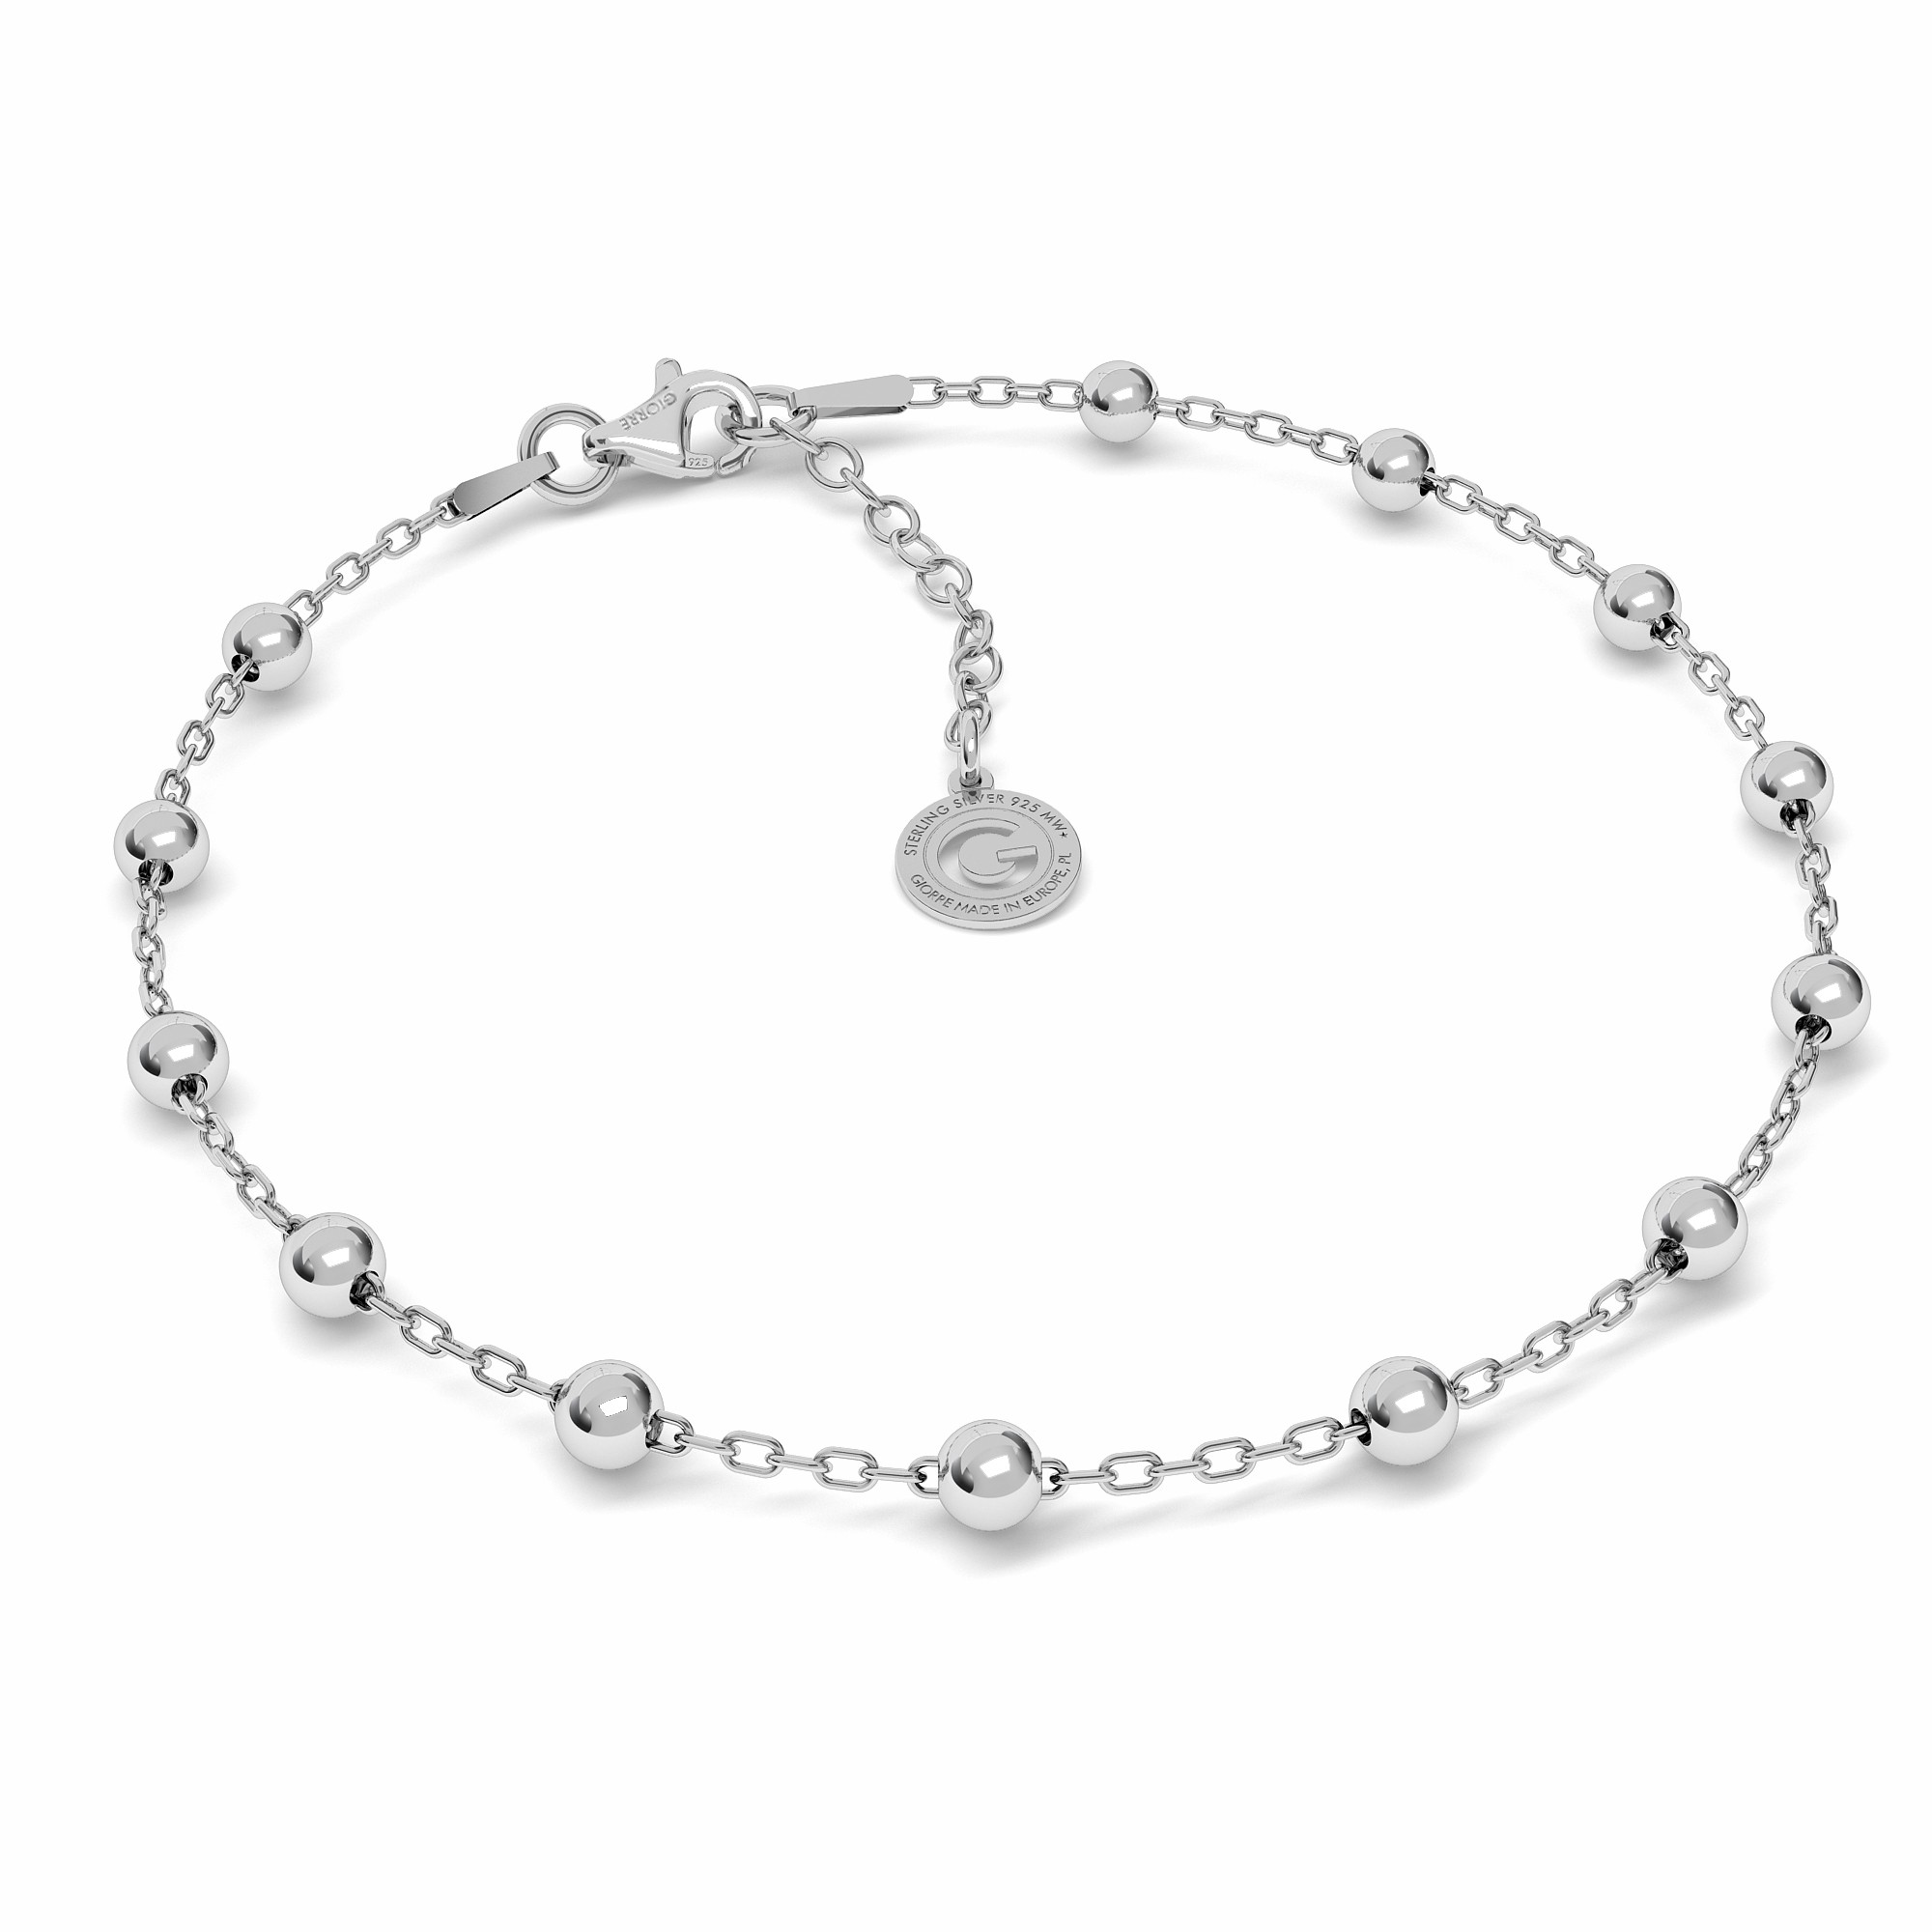 Silver bracelet anchor with balls